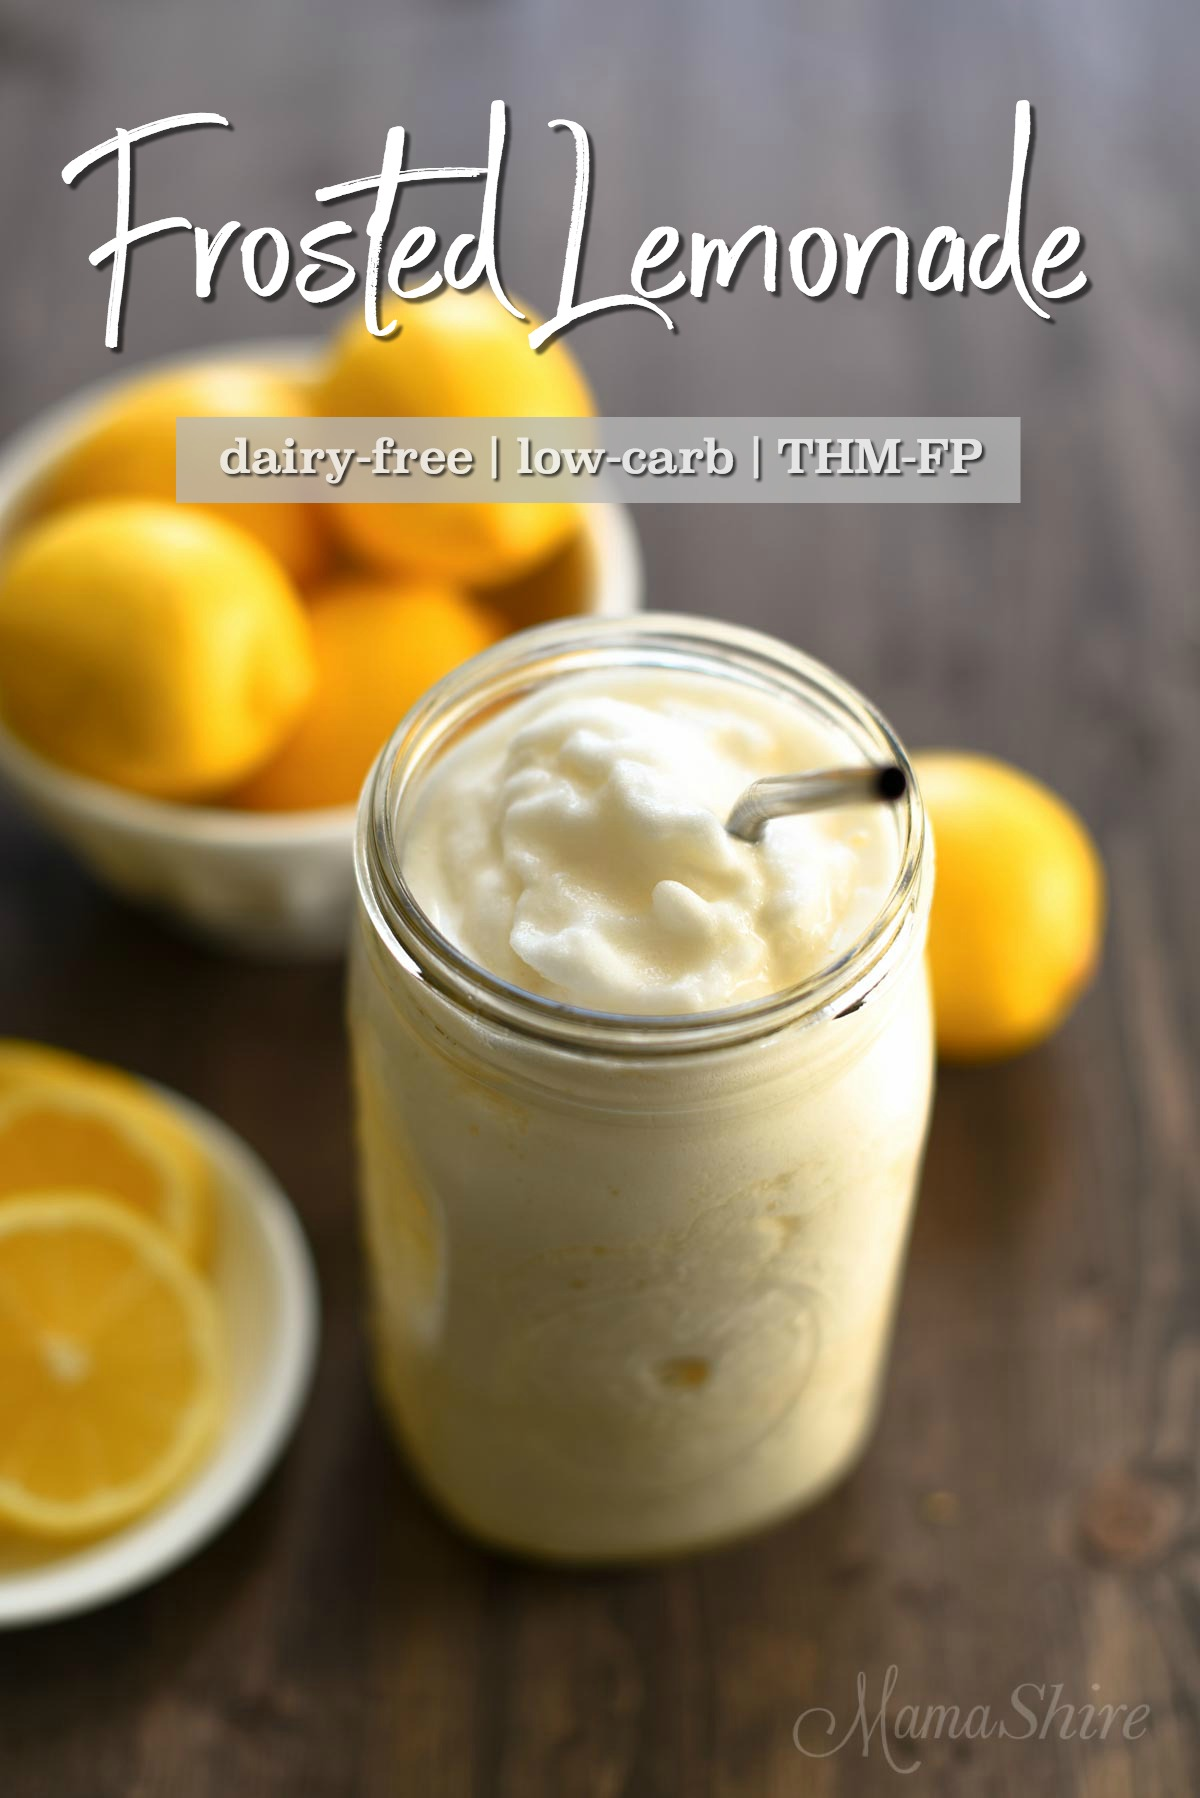 Frosted Lemonade - dairy-free, copycat recipe for Chick-Fil-A Frosted Lemonade.